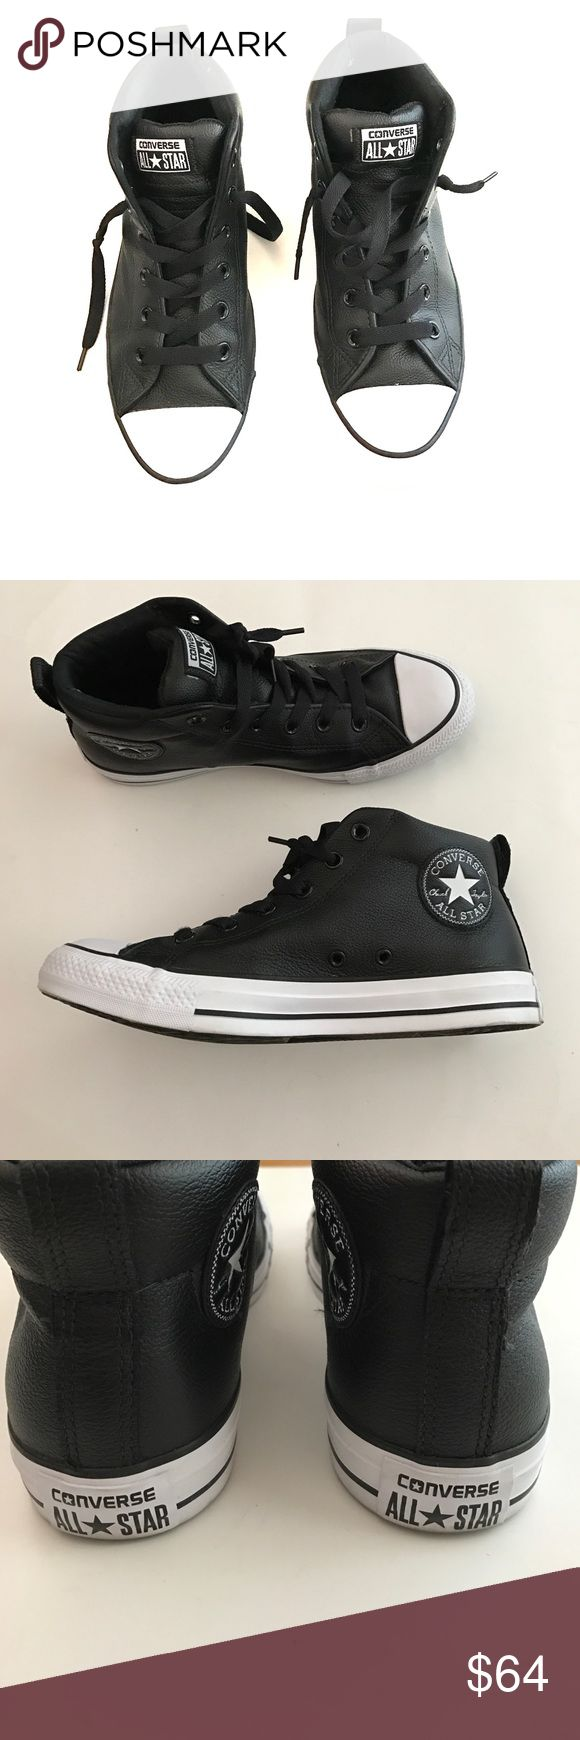 Leather Black Converse Leather Black Converse. Mid Top. Worn only once indoors. Size 7 in men's | 9 in women's Converse Shoes Sneakers